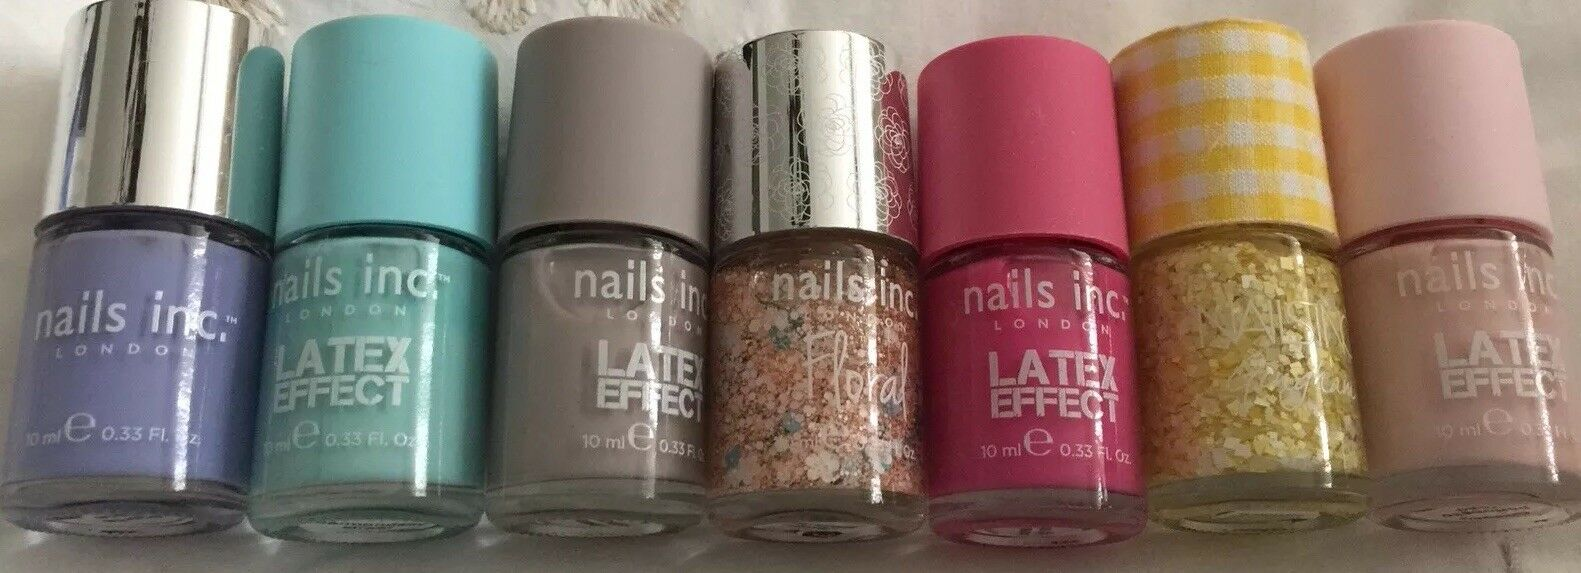 NAILS INC NAIL varnish - Portobello Road- pale pink Matt vinyl ...